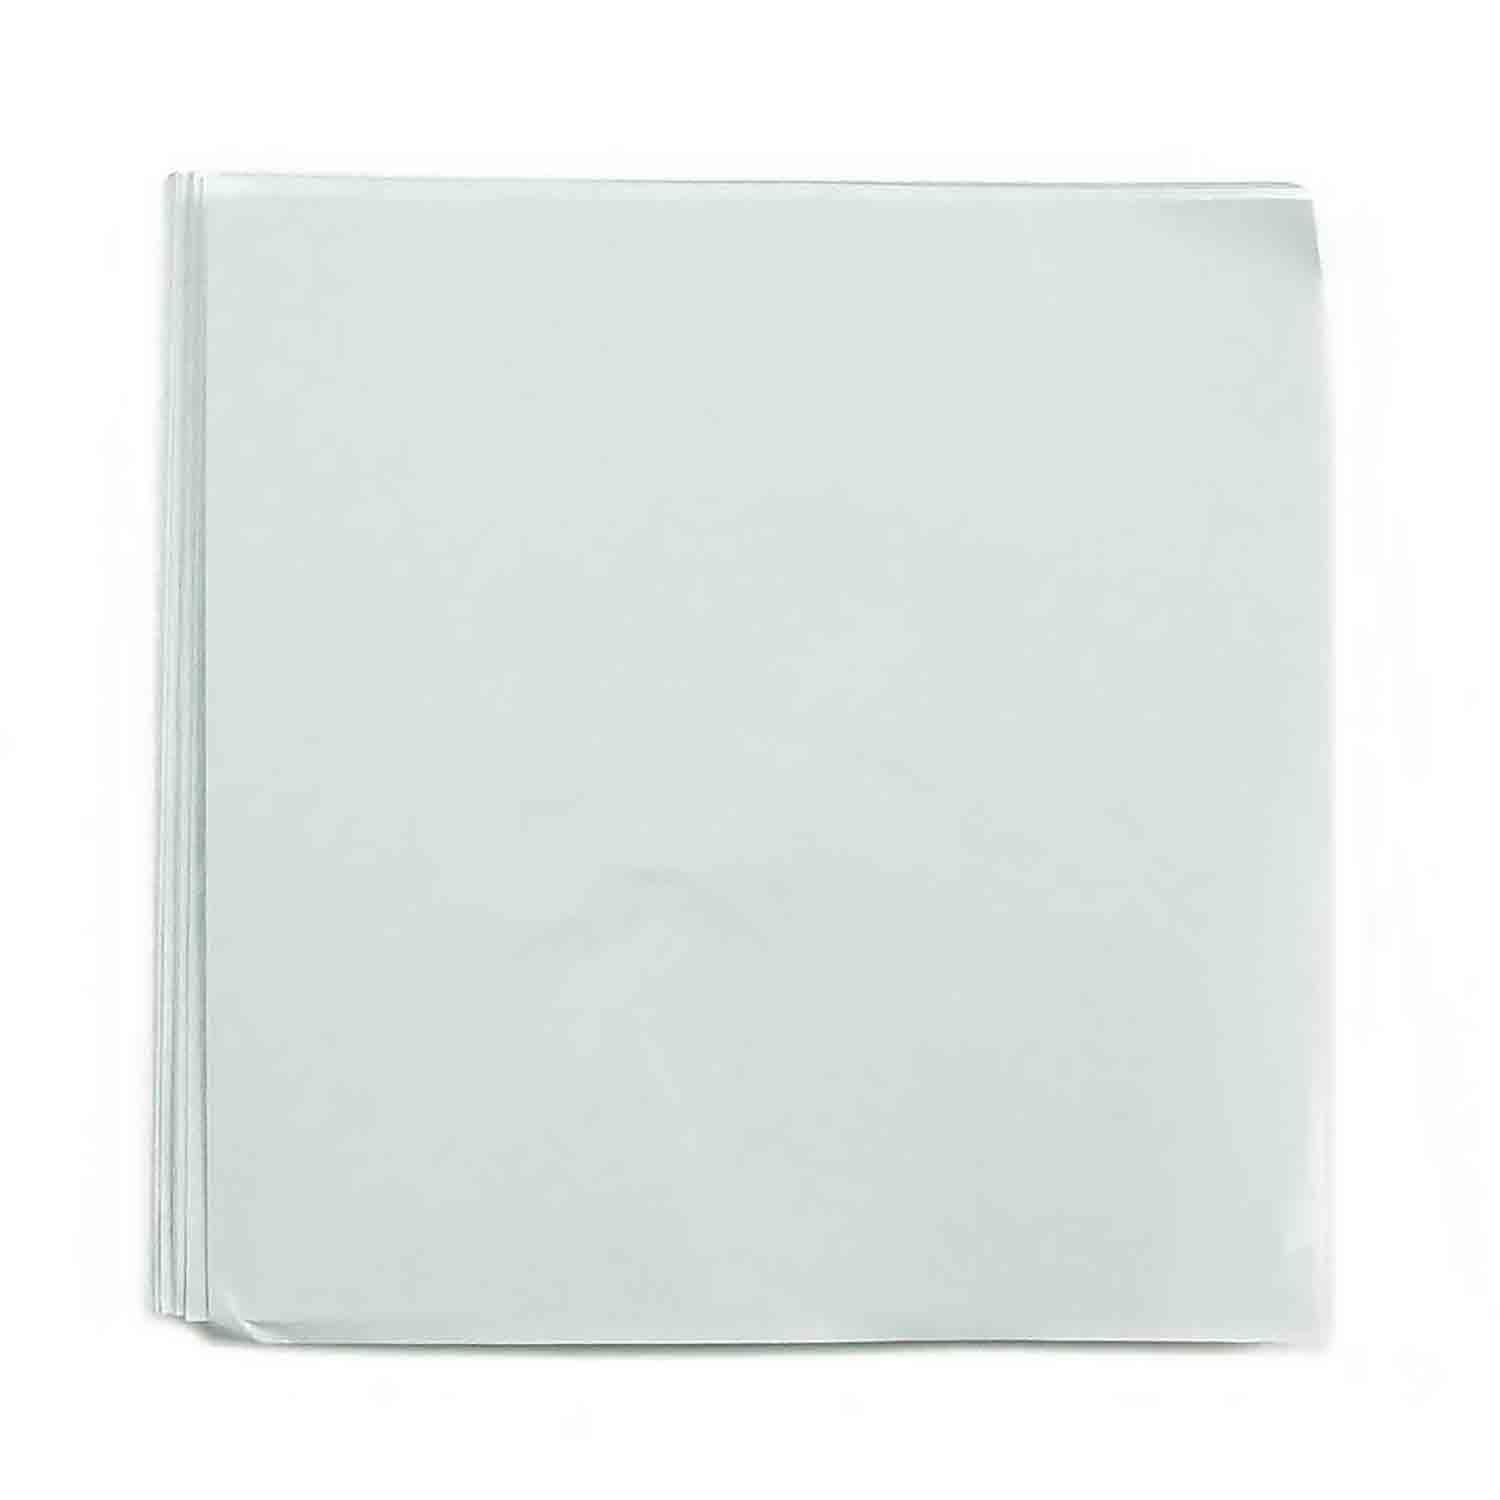 "3 x 3"" Foil Wrapper White"